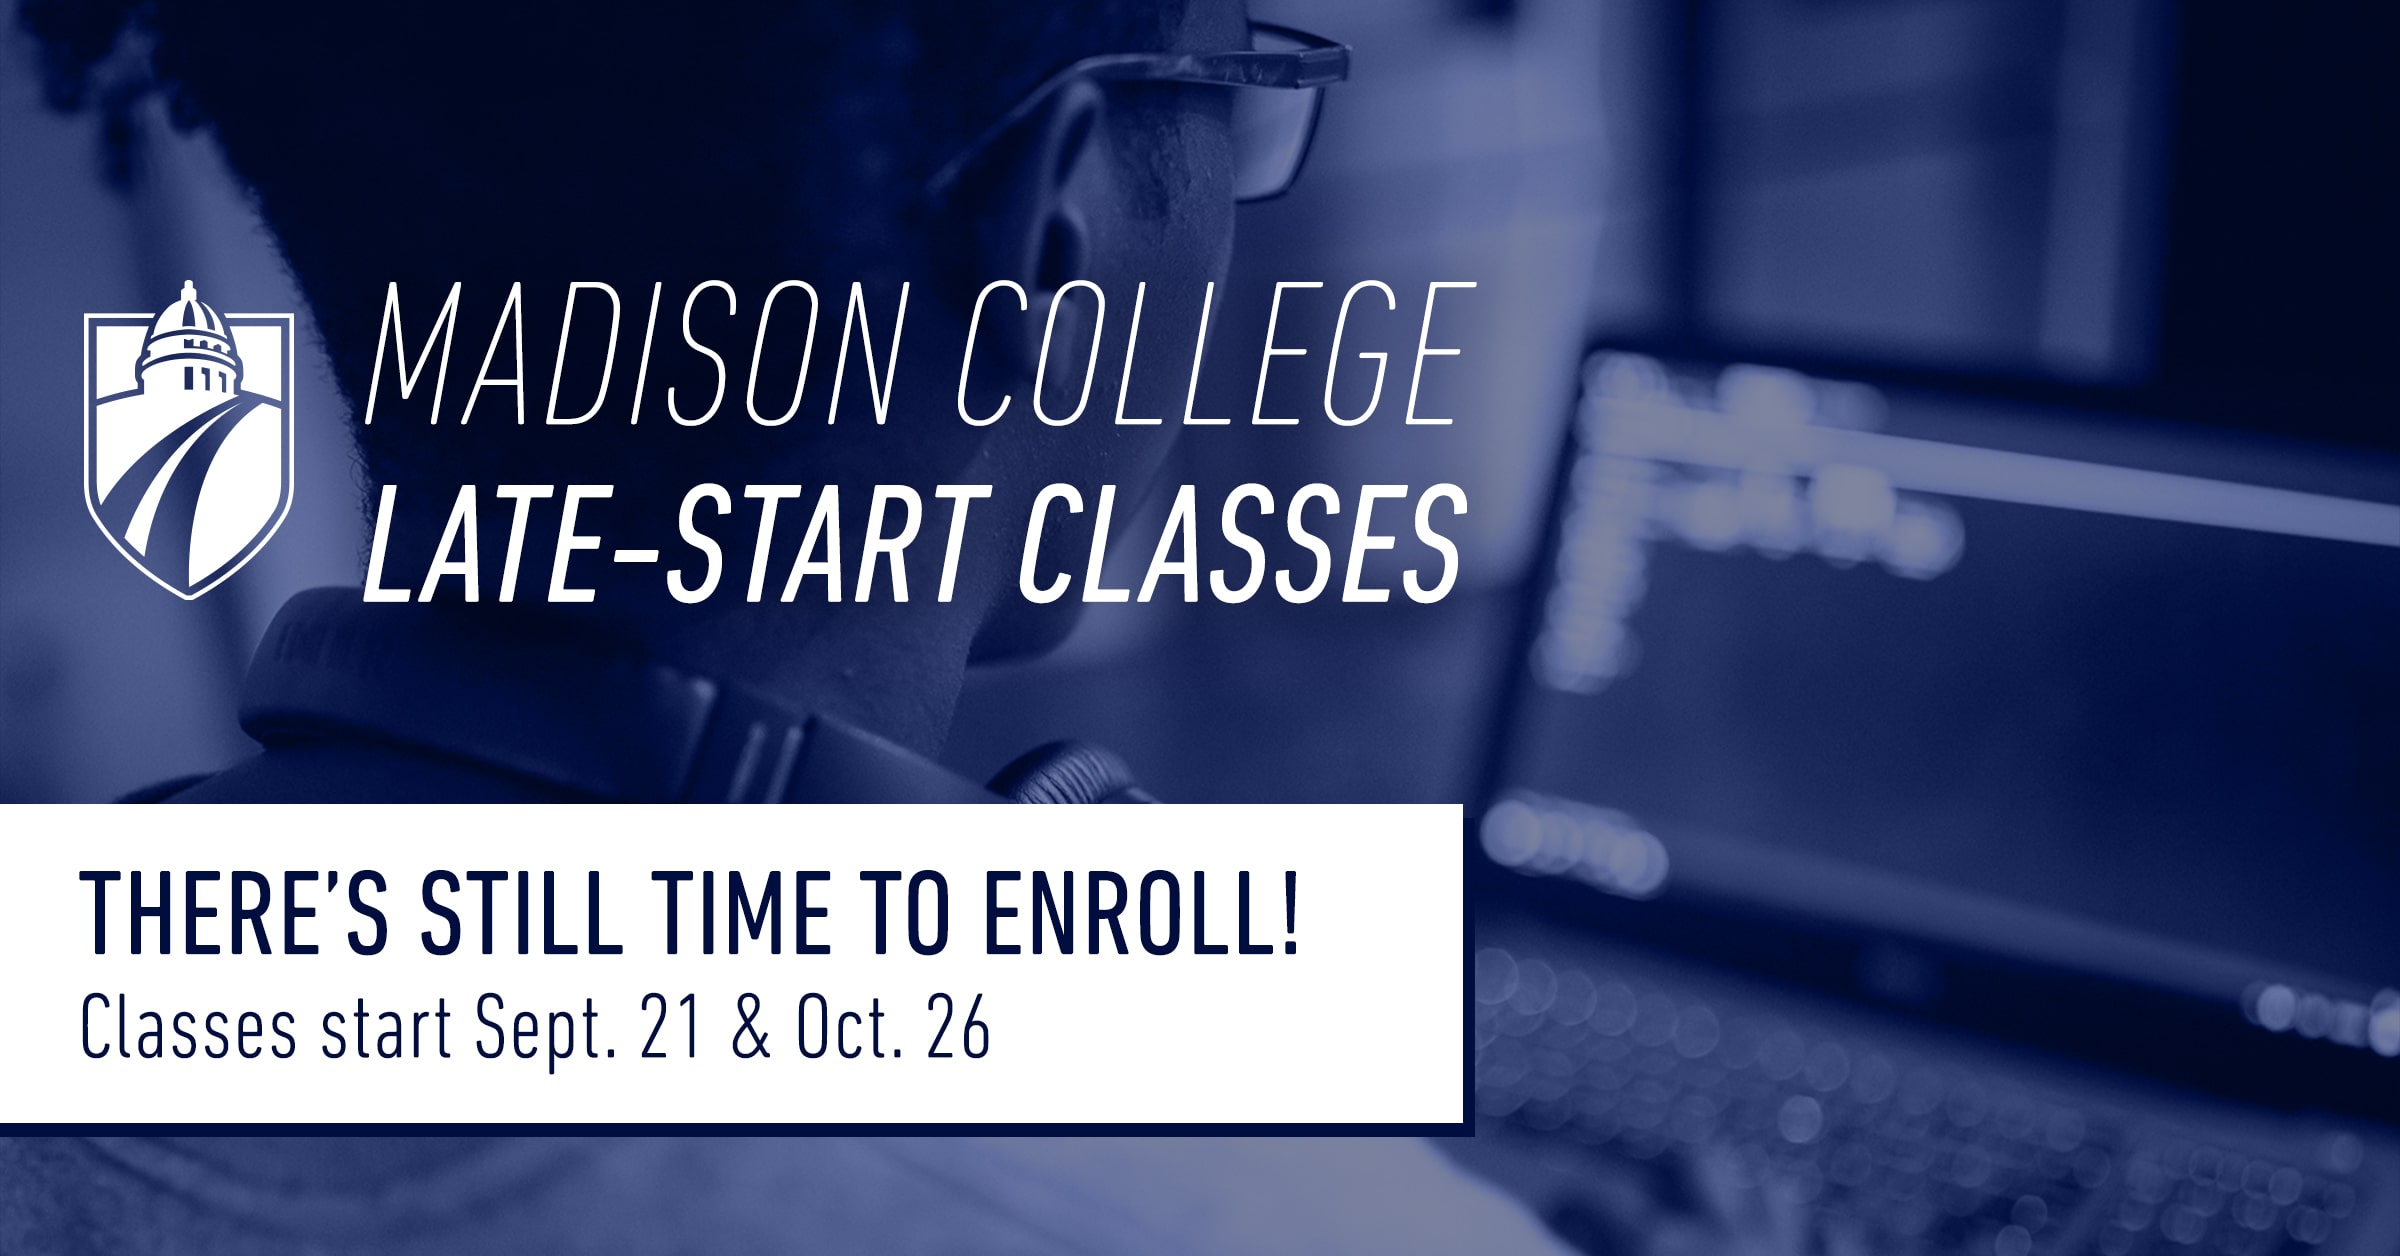 Madison College Late-Start Classes. THERE'S STILL TIME TO ENROLL! Classes start Sept. 21 & Oct. 26.